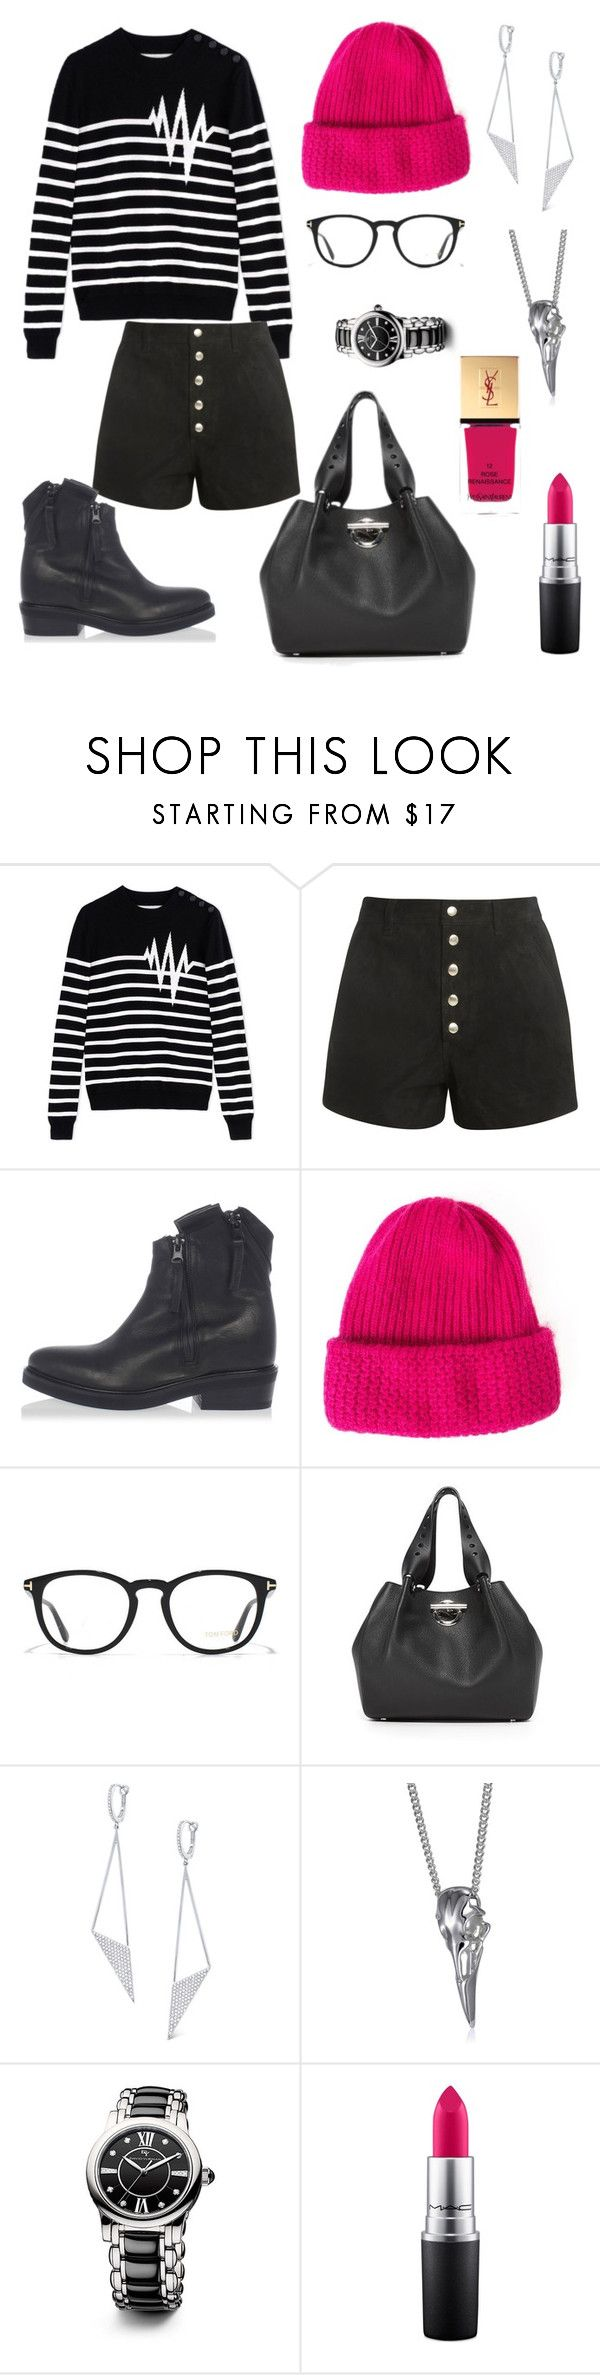 """""""Hipster chic with neon pink details"""" by pale-readhead ❤ liked on Polyvore featuring Each X Other, rag & bone, Cinzia Araia, Tak.Ori, Tom Ford, Alexander Wang, KC Designs, David Yurman, MAC Cosmetics and Yves Saint Laurent"""